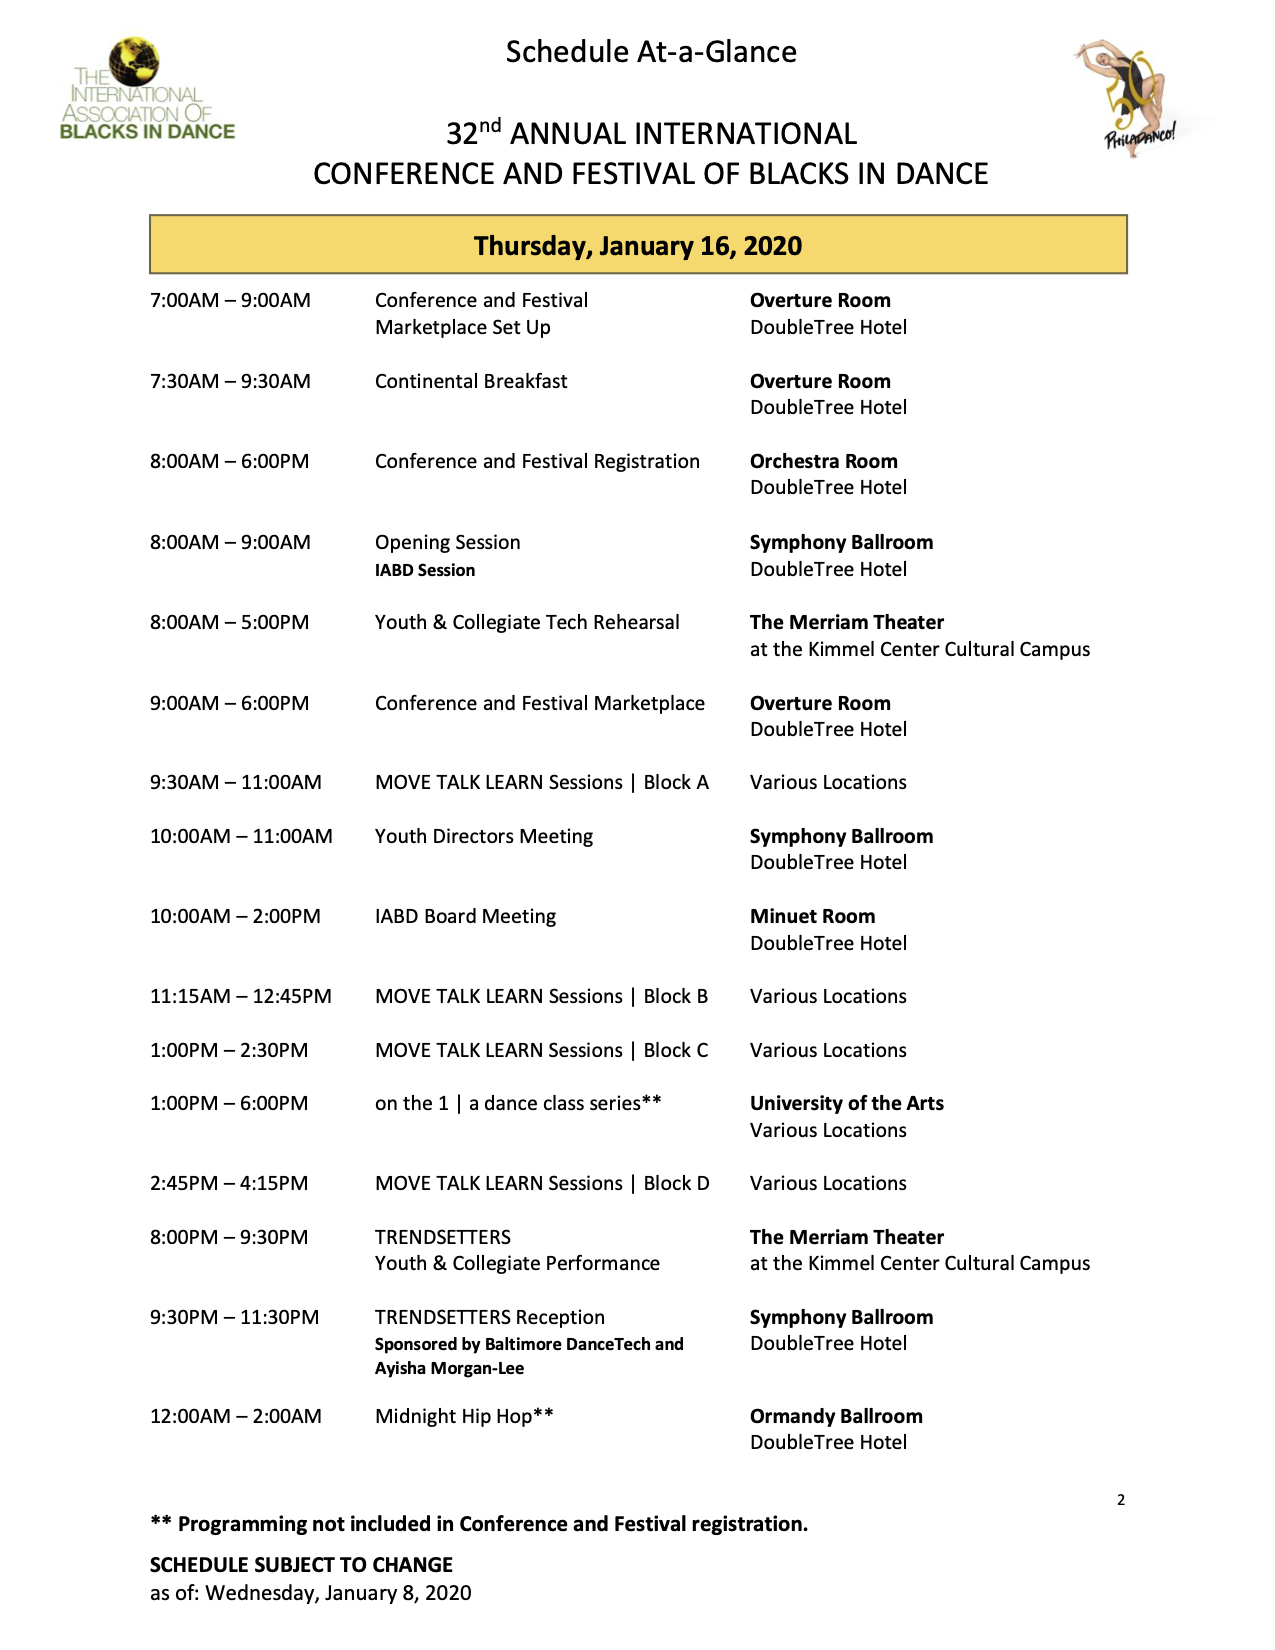 Thursday Schedule at a glance